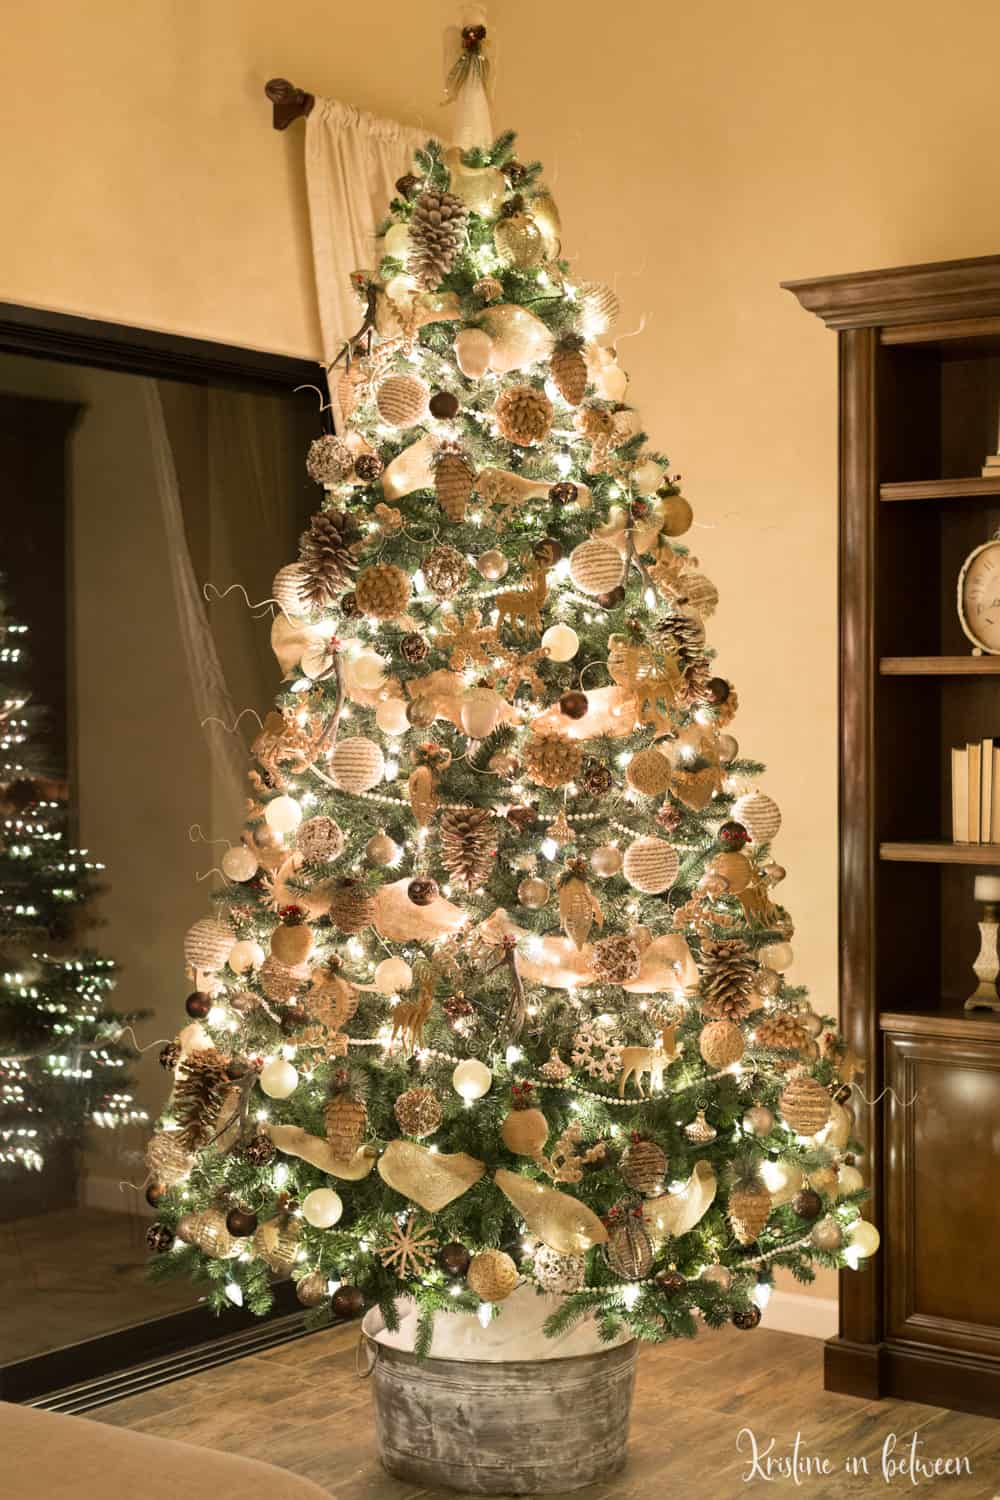 The very best Christmas tree decorating tips! Make your tree look incredible!